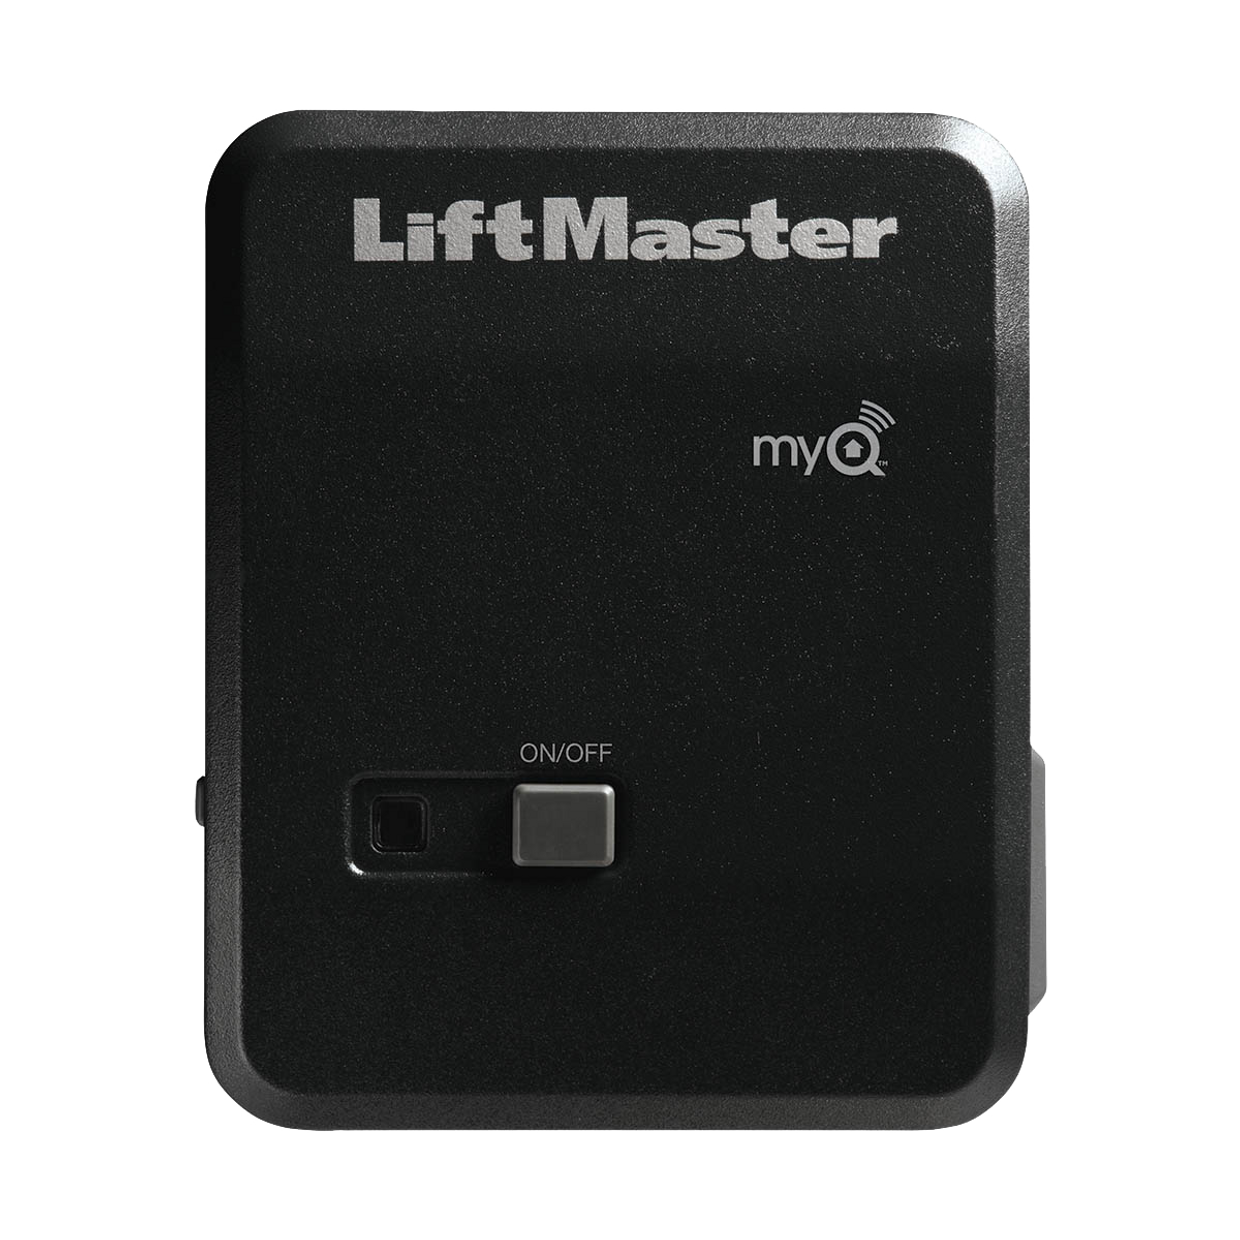 825lm Wireless Light Control Liftmaster